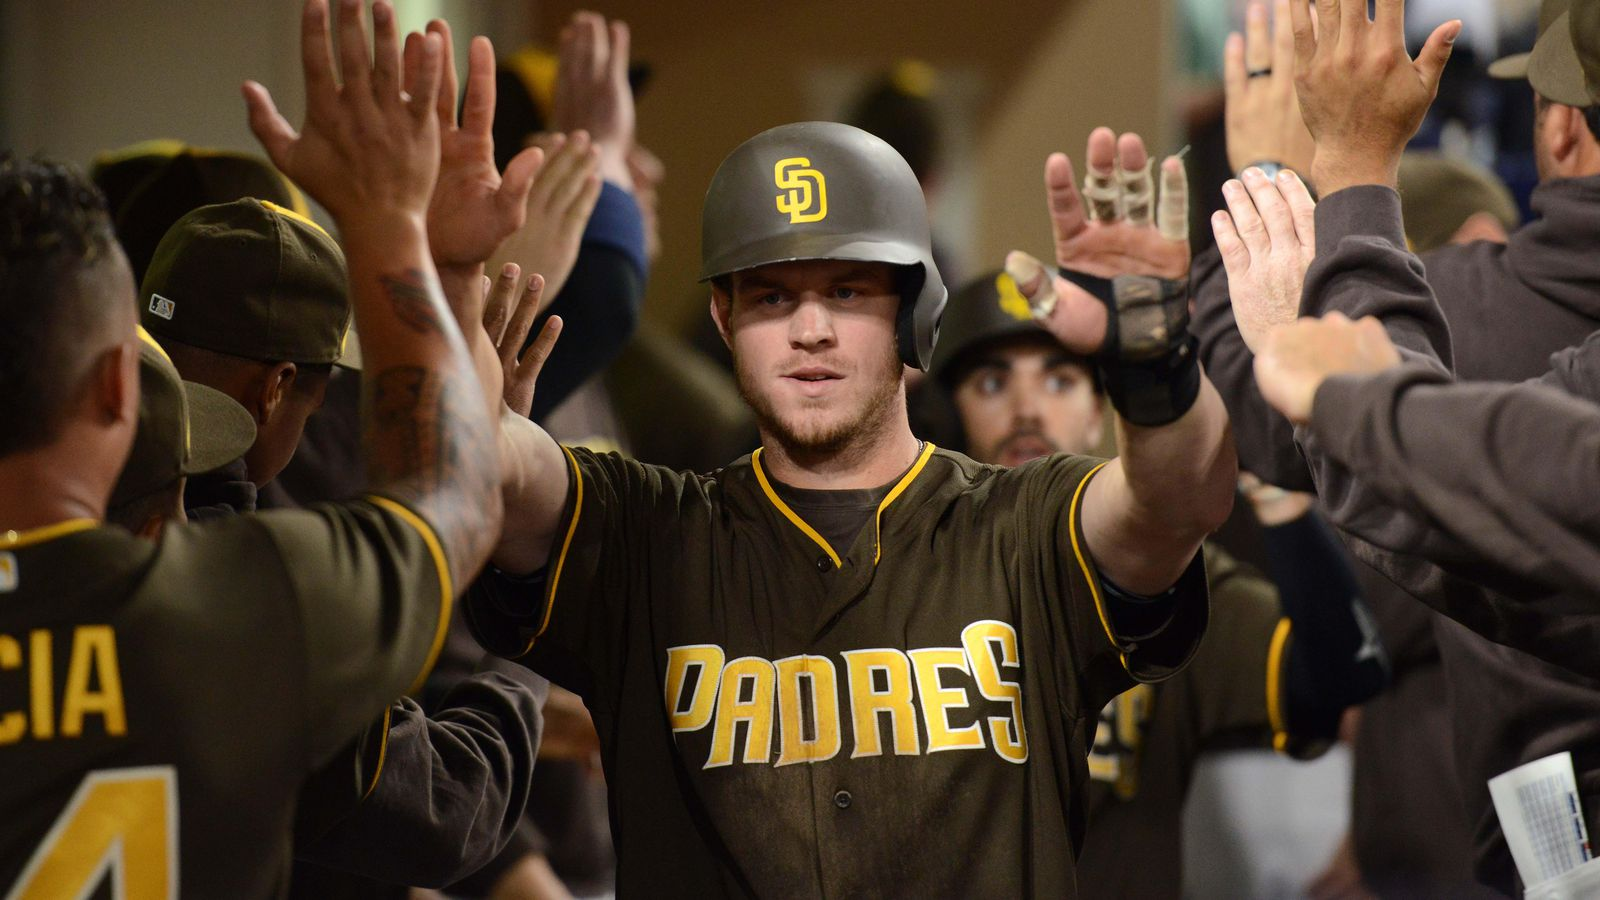 quizzes gaslamp ball quiz padres 30 or more hr in a season